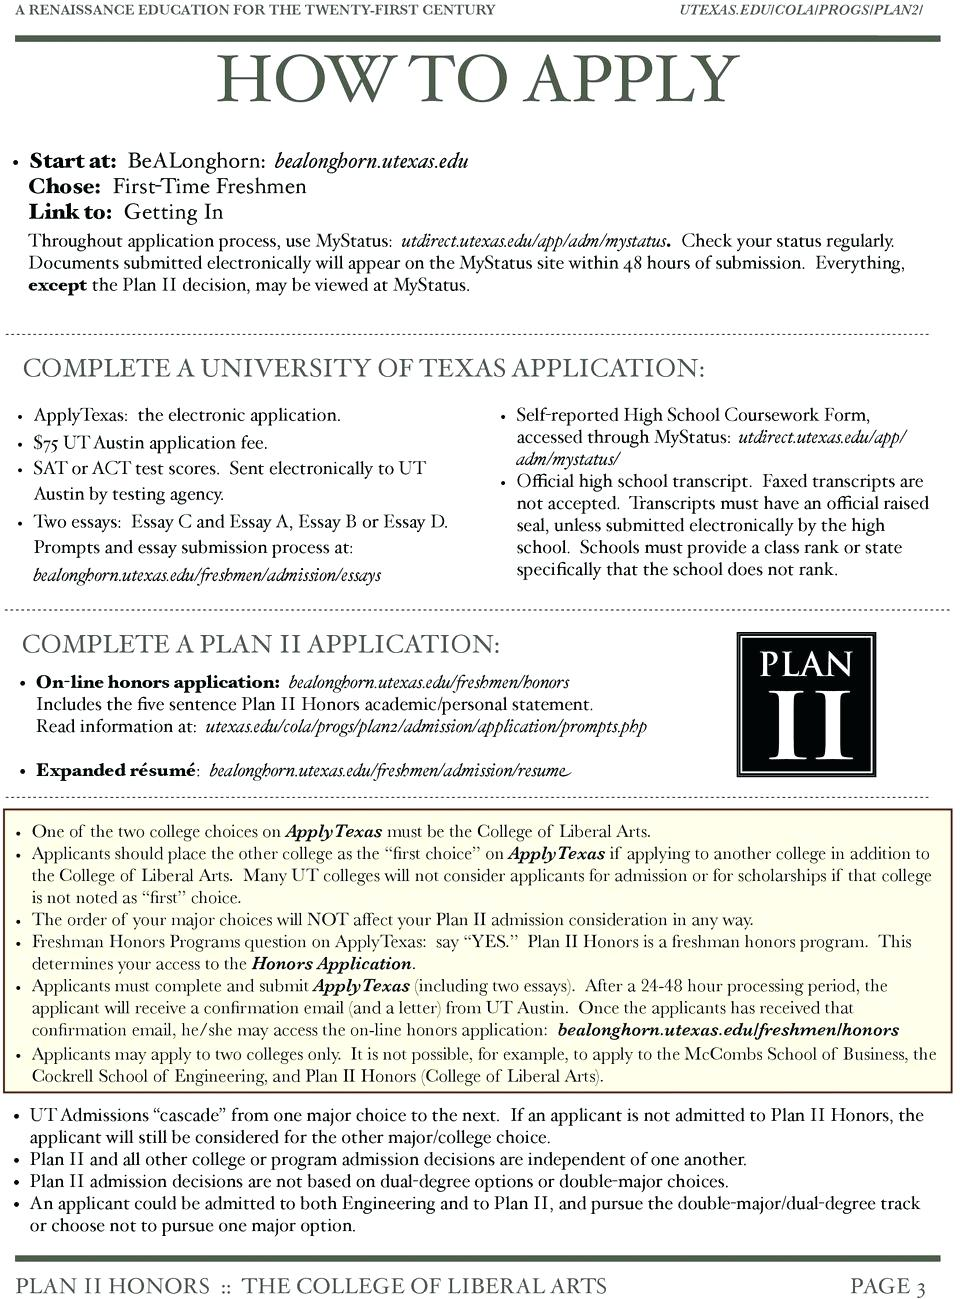 016 College Essay Requirements Example Application Examples Proess Quickplumber Us Apply Texas Require Outstanding Board 2017 Boston Sat Requirement Full